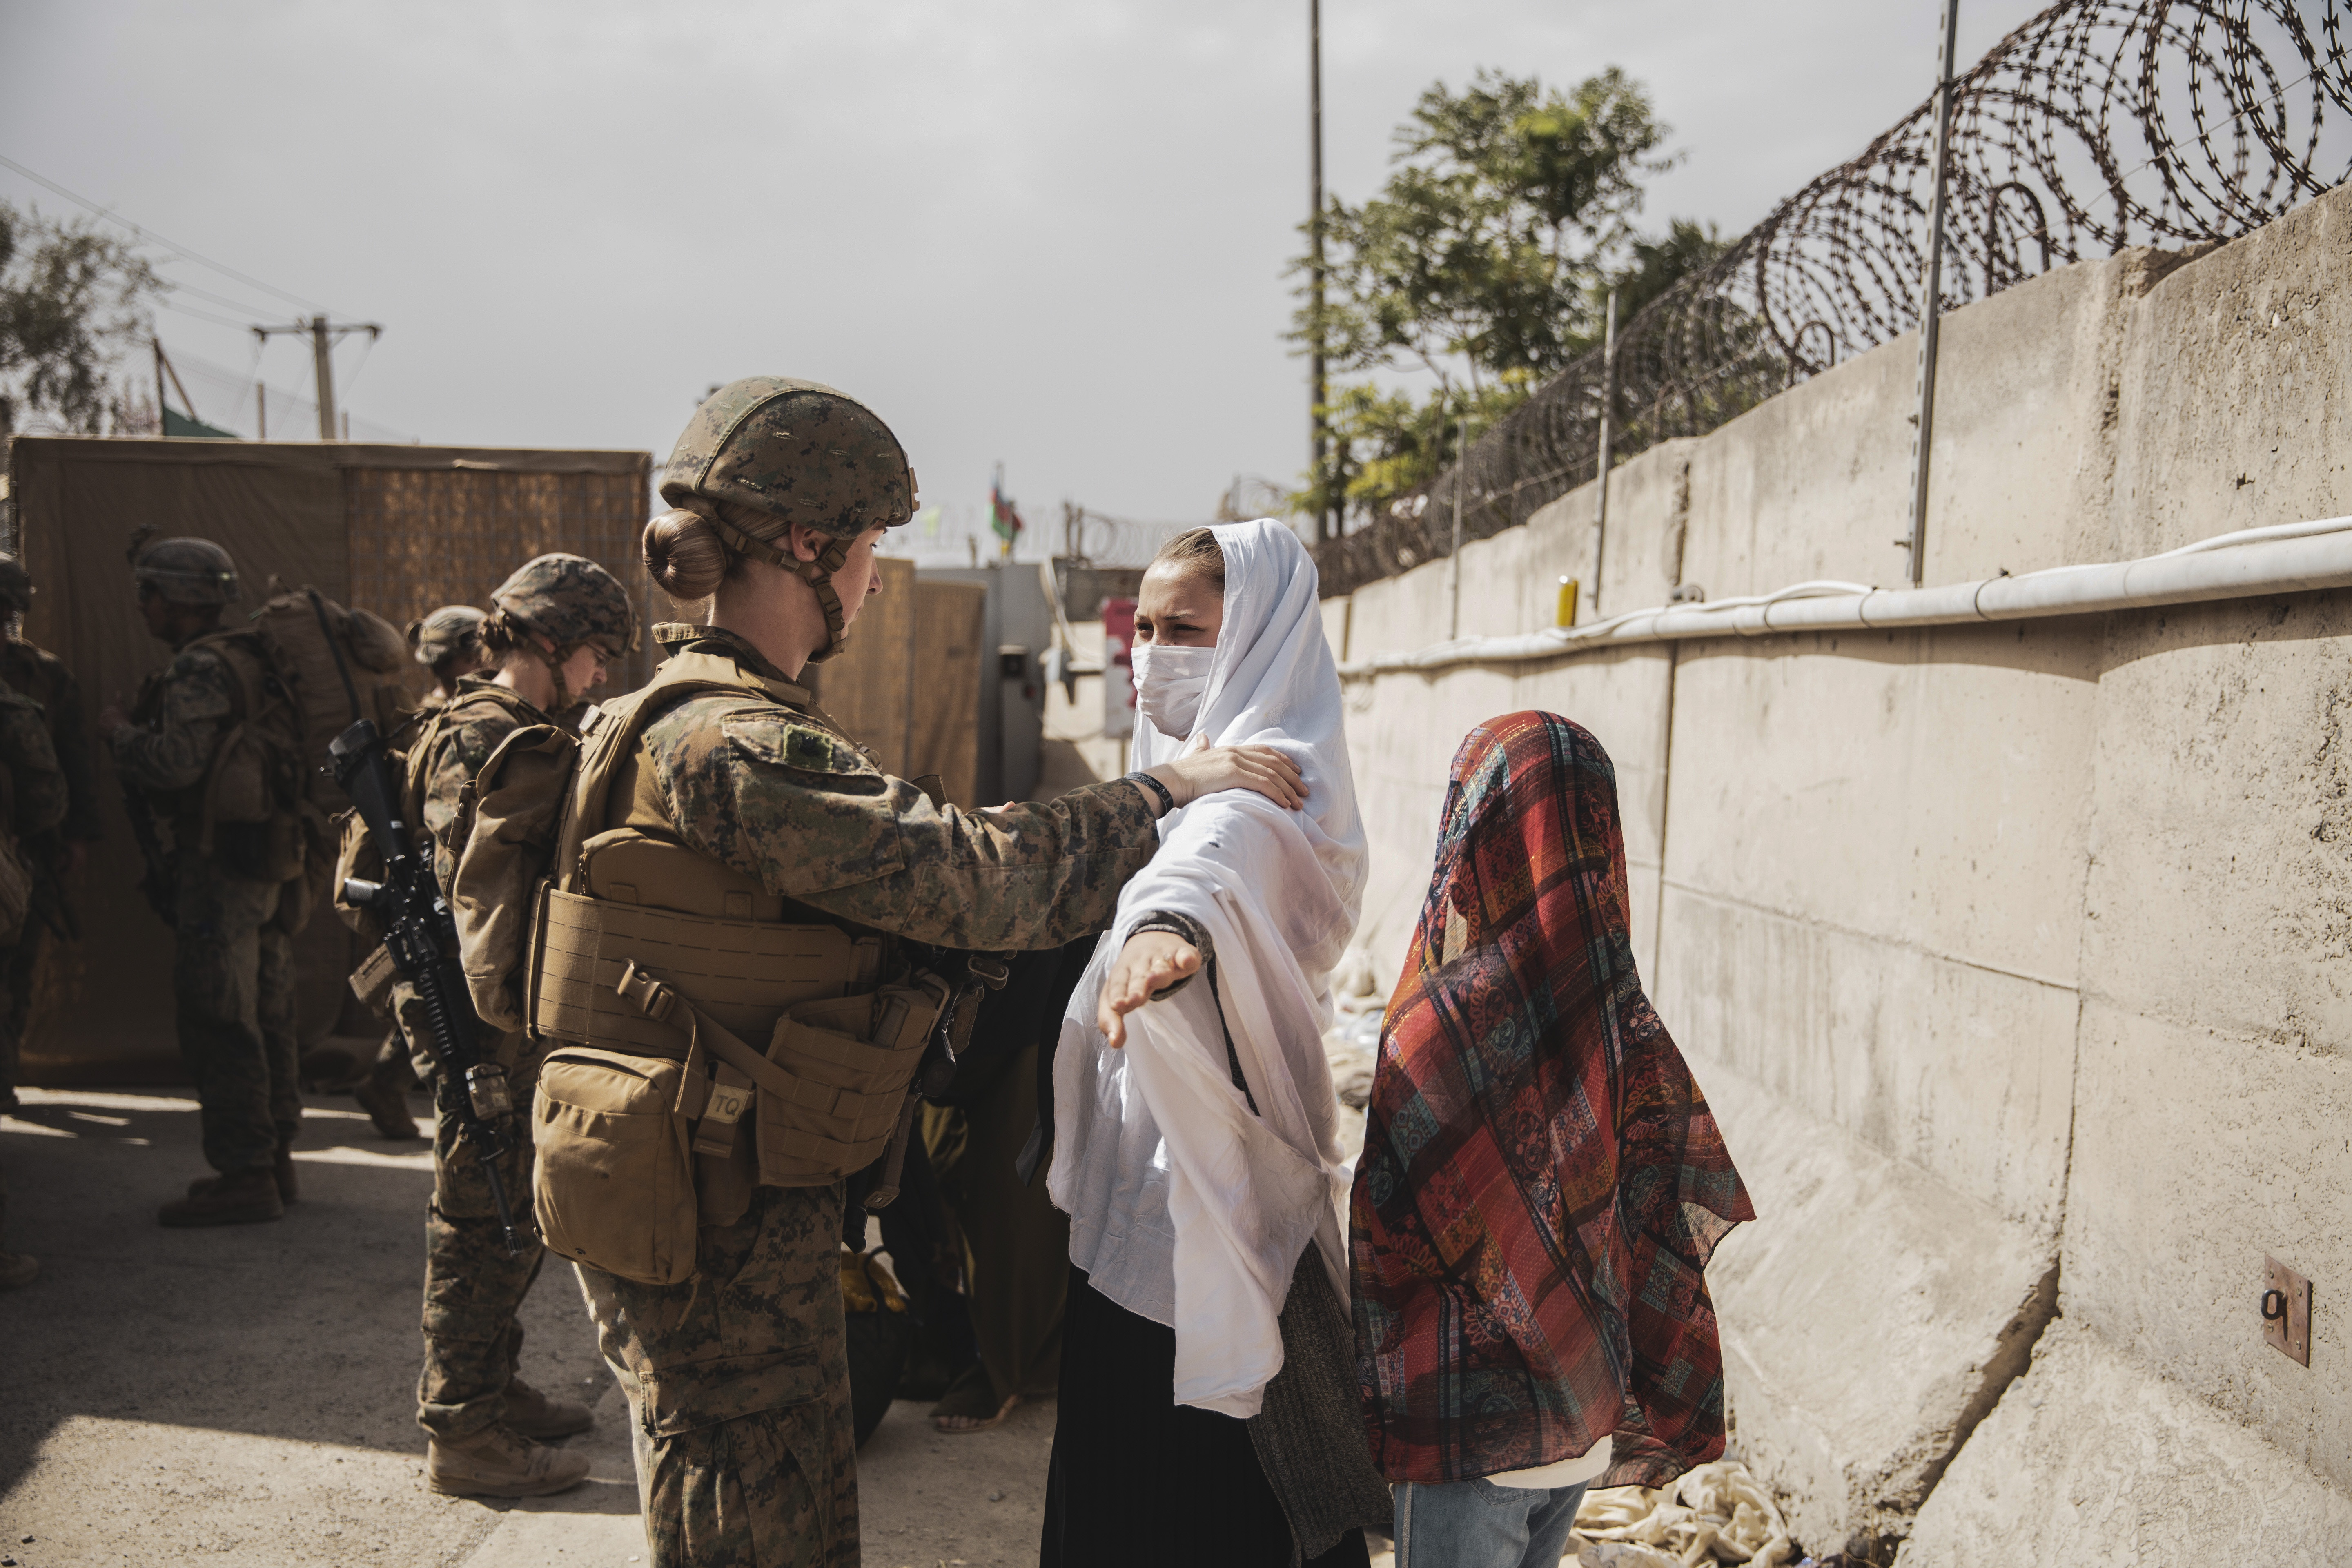 A Marine checks two civilians during processing through an Evacuee Control Checkpoint (ECC) during an evacuation at Hamid Karzai International Airport, Kabul, Afghanistan, Aug. 18. U.S. Marines are assisting the Department of State with an orderly drawdown of designated personnel in Afghanistan. (U.S. Marine Corps photo by Staff Sgt. Victor Mancilla)